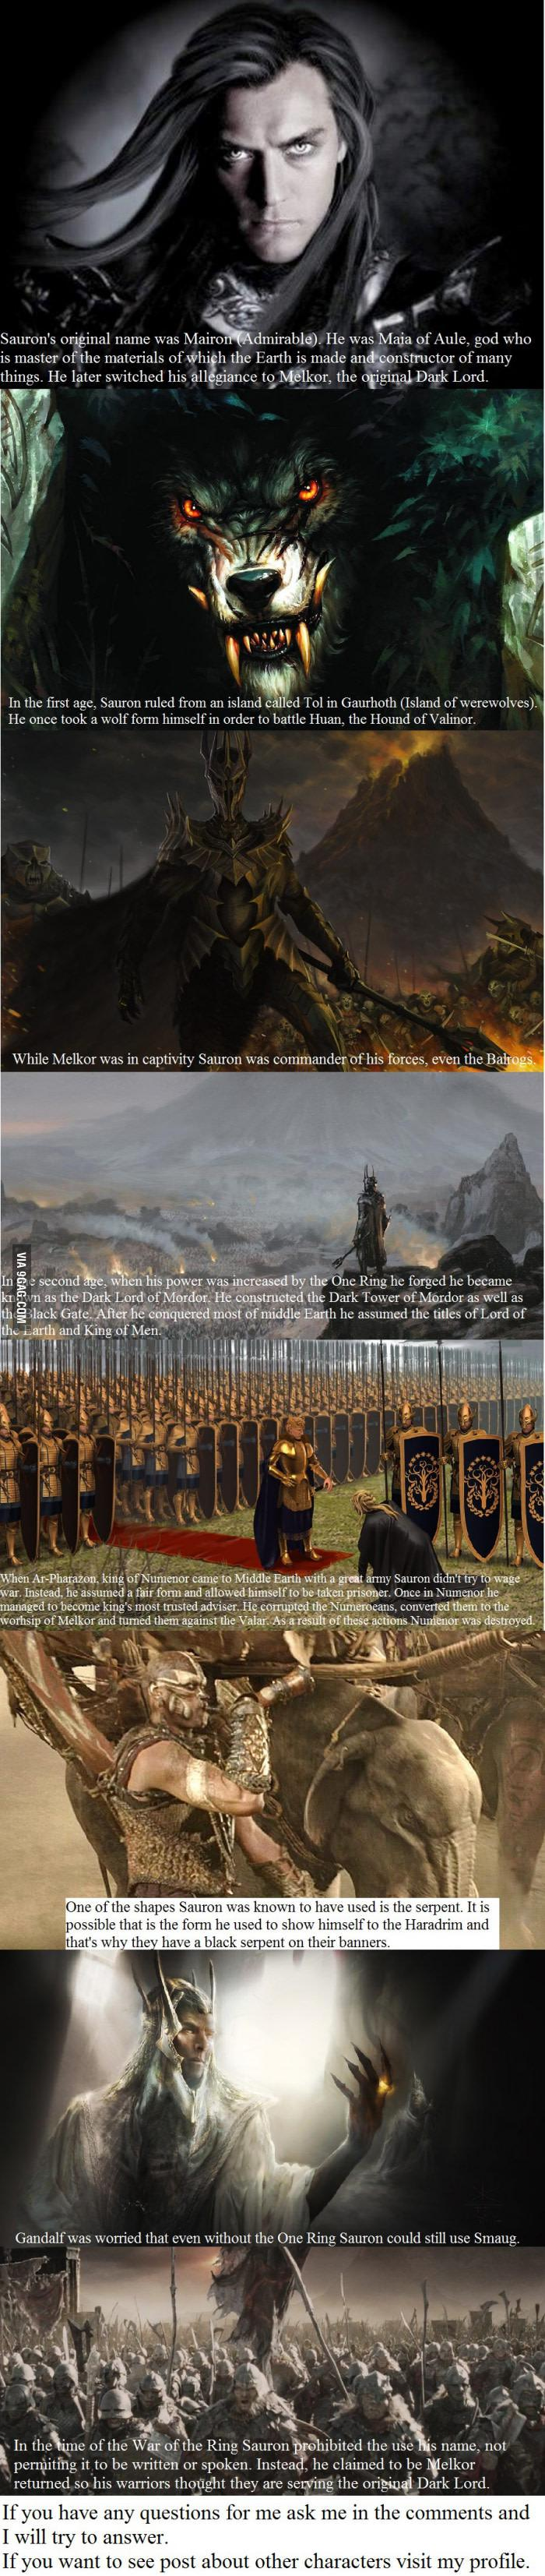 8 Sauron Facts You May Not Have Known